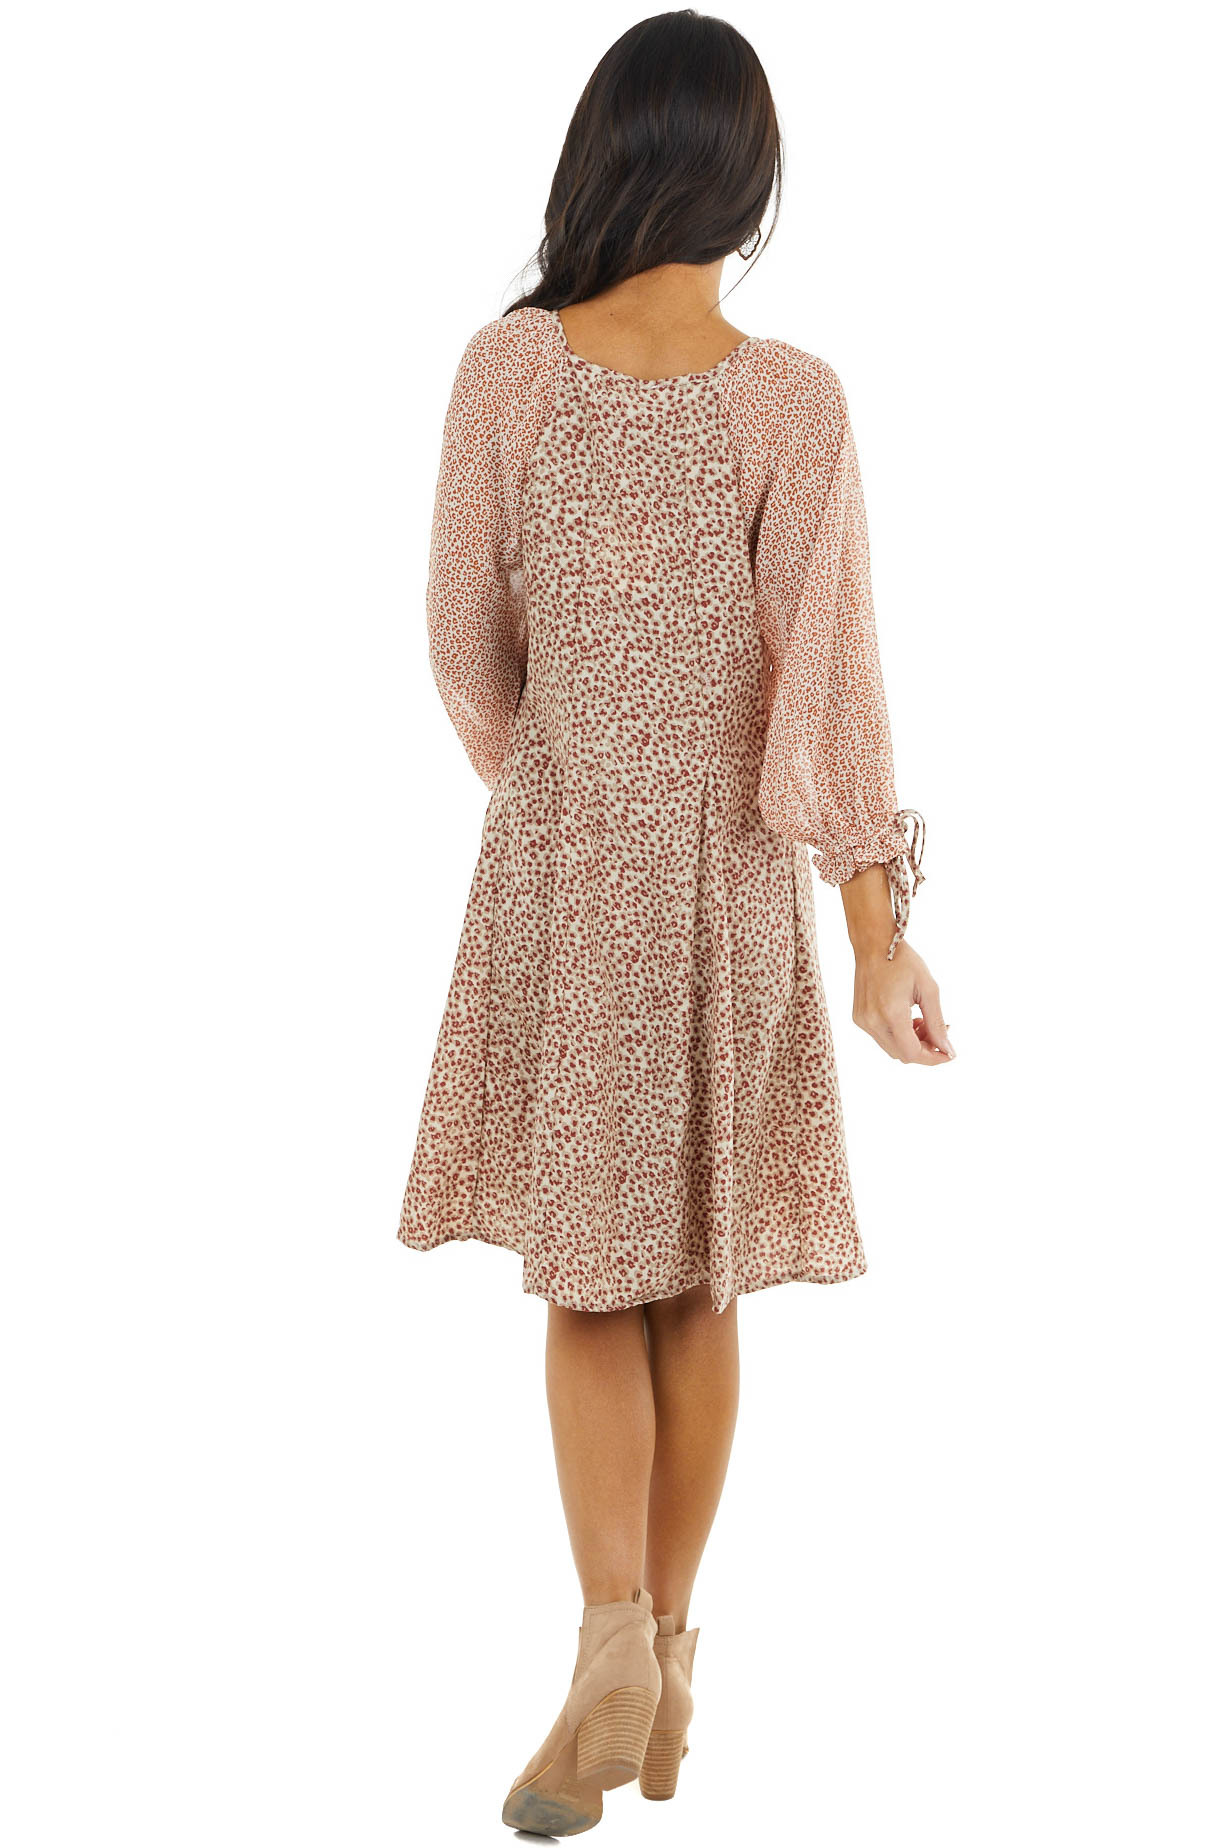 Mahogany and Rust Multi Pattern Print Bubble Sleeve Dress